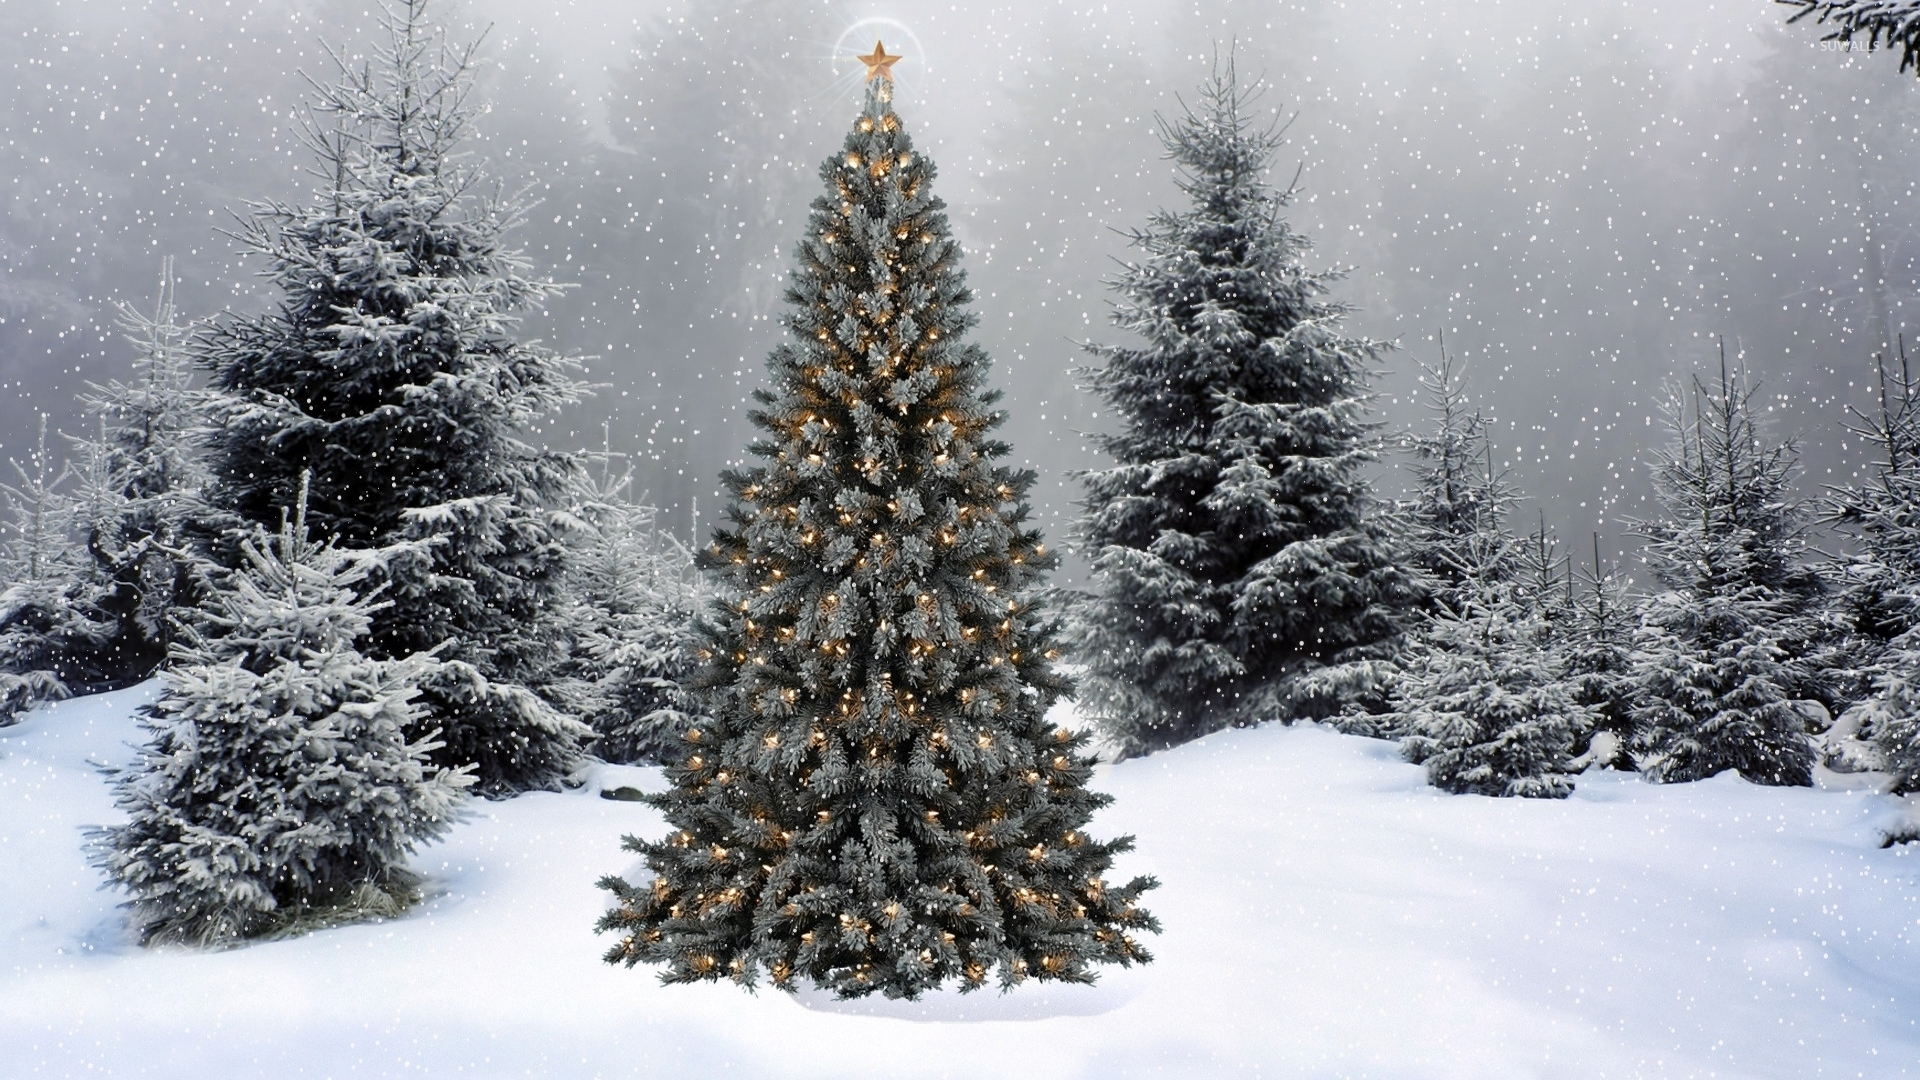 Snow falling on the Christmas tree wallpaper - Holiday wallpapers ...